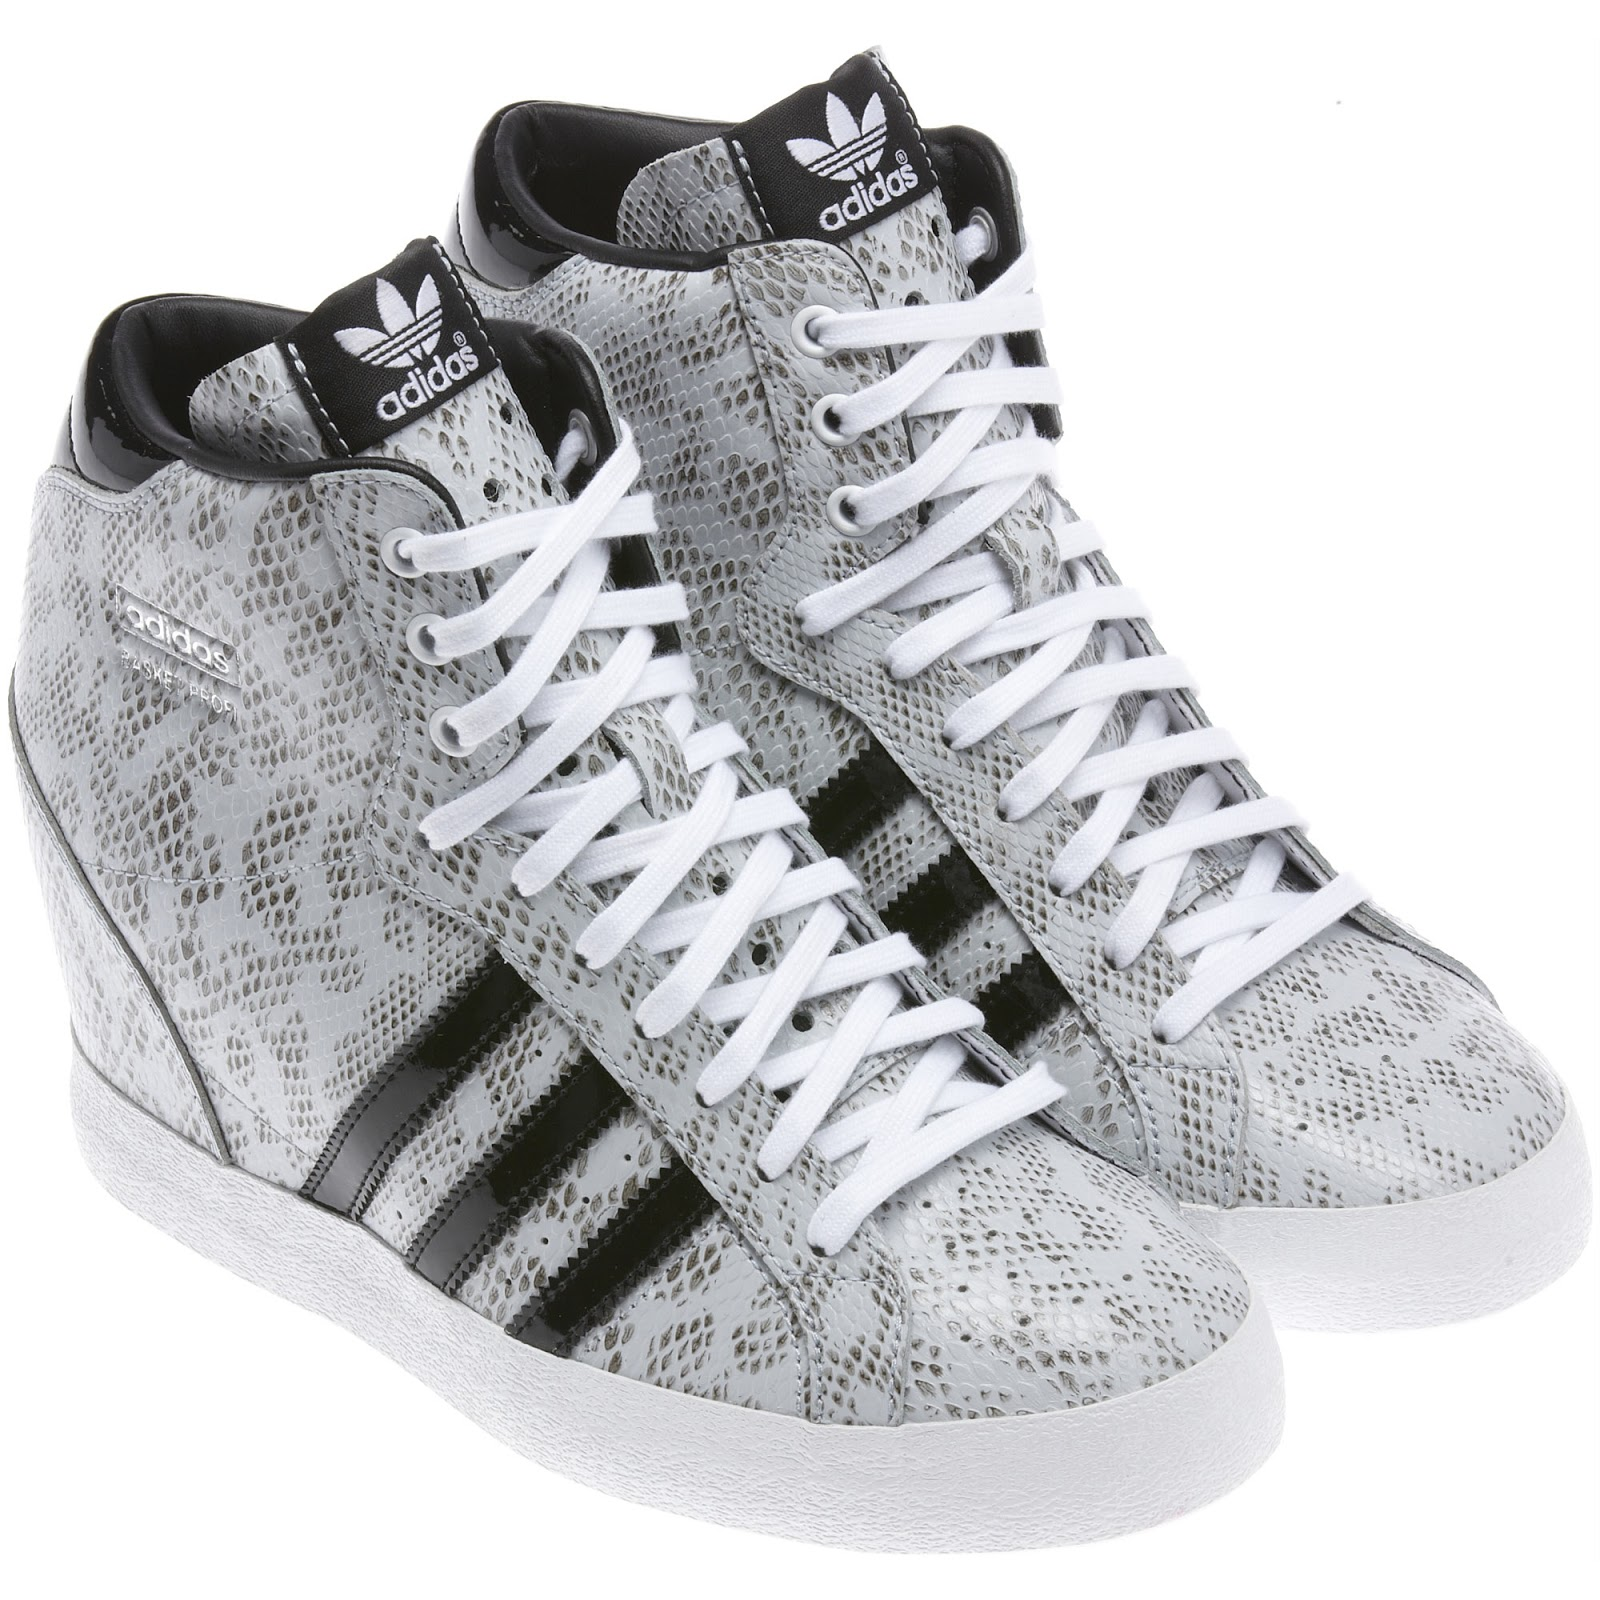 Adidas Wedge-Heeled Sneakers - cars & life | cars fashion ...